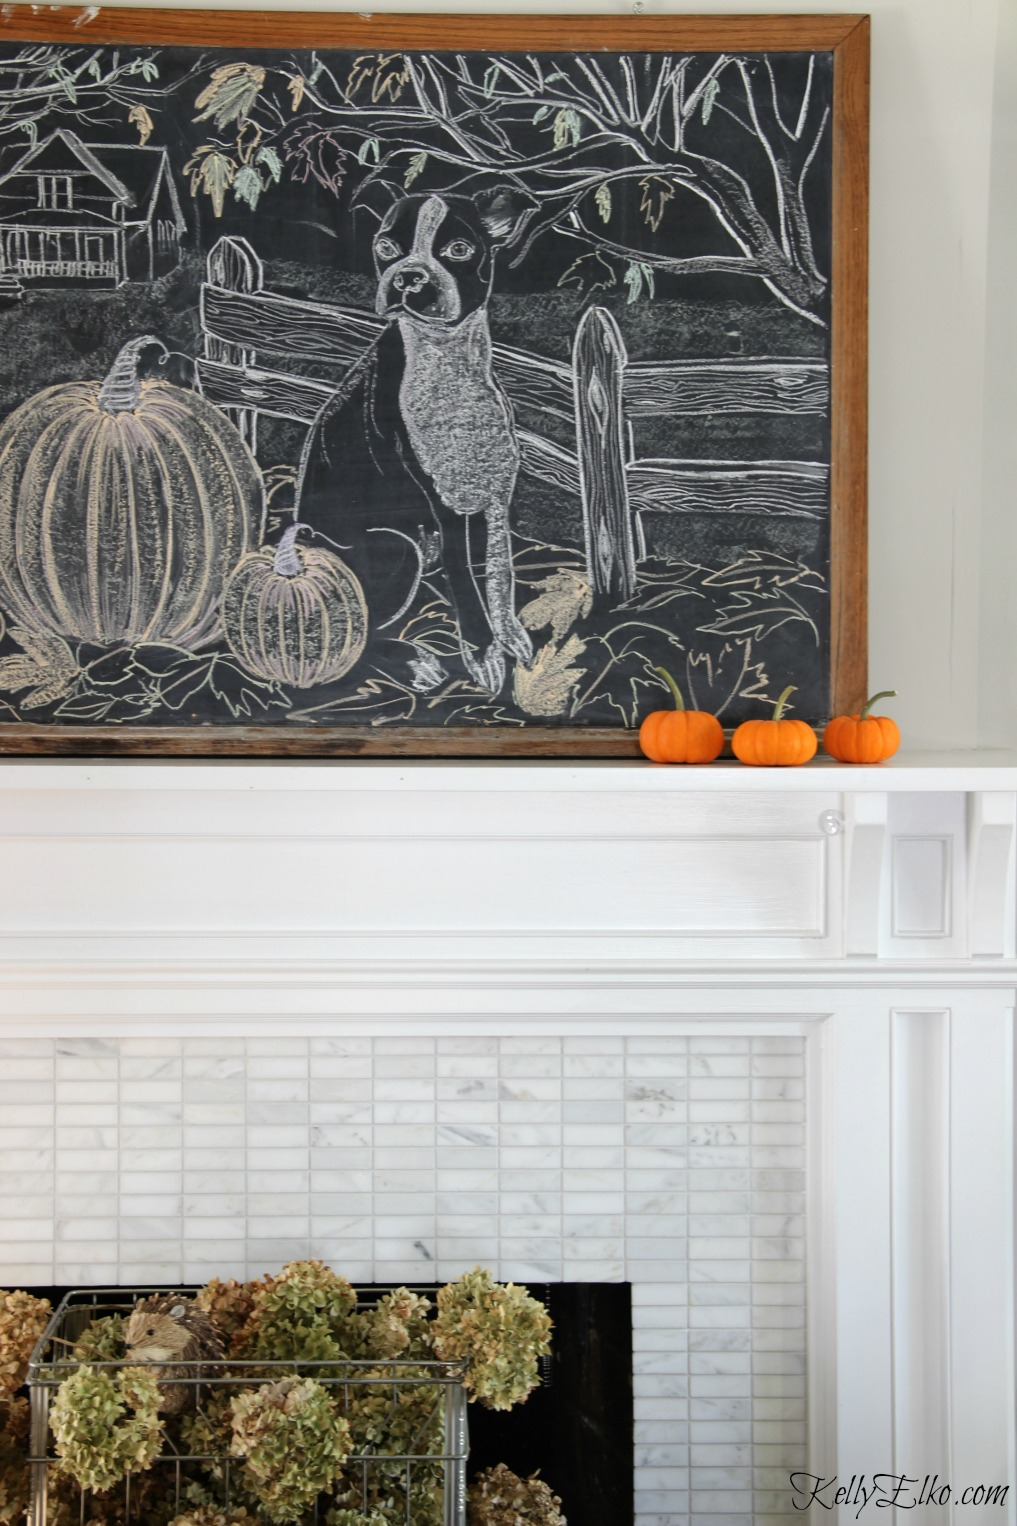 Love this fall chalkboard art mantel in this eclectic fall living room kellyelko.com